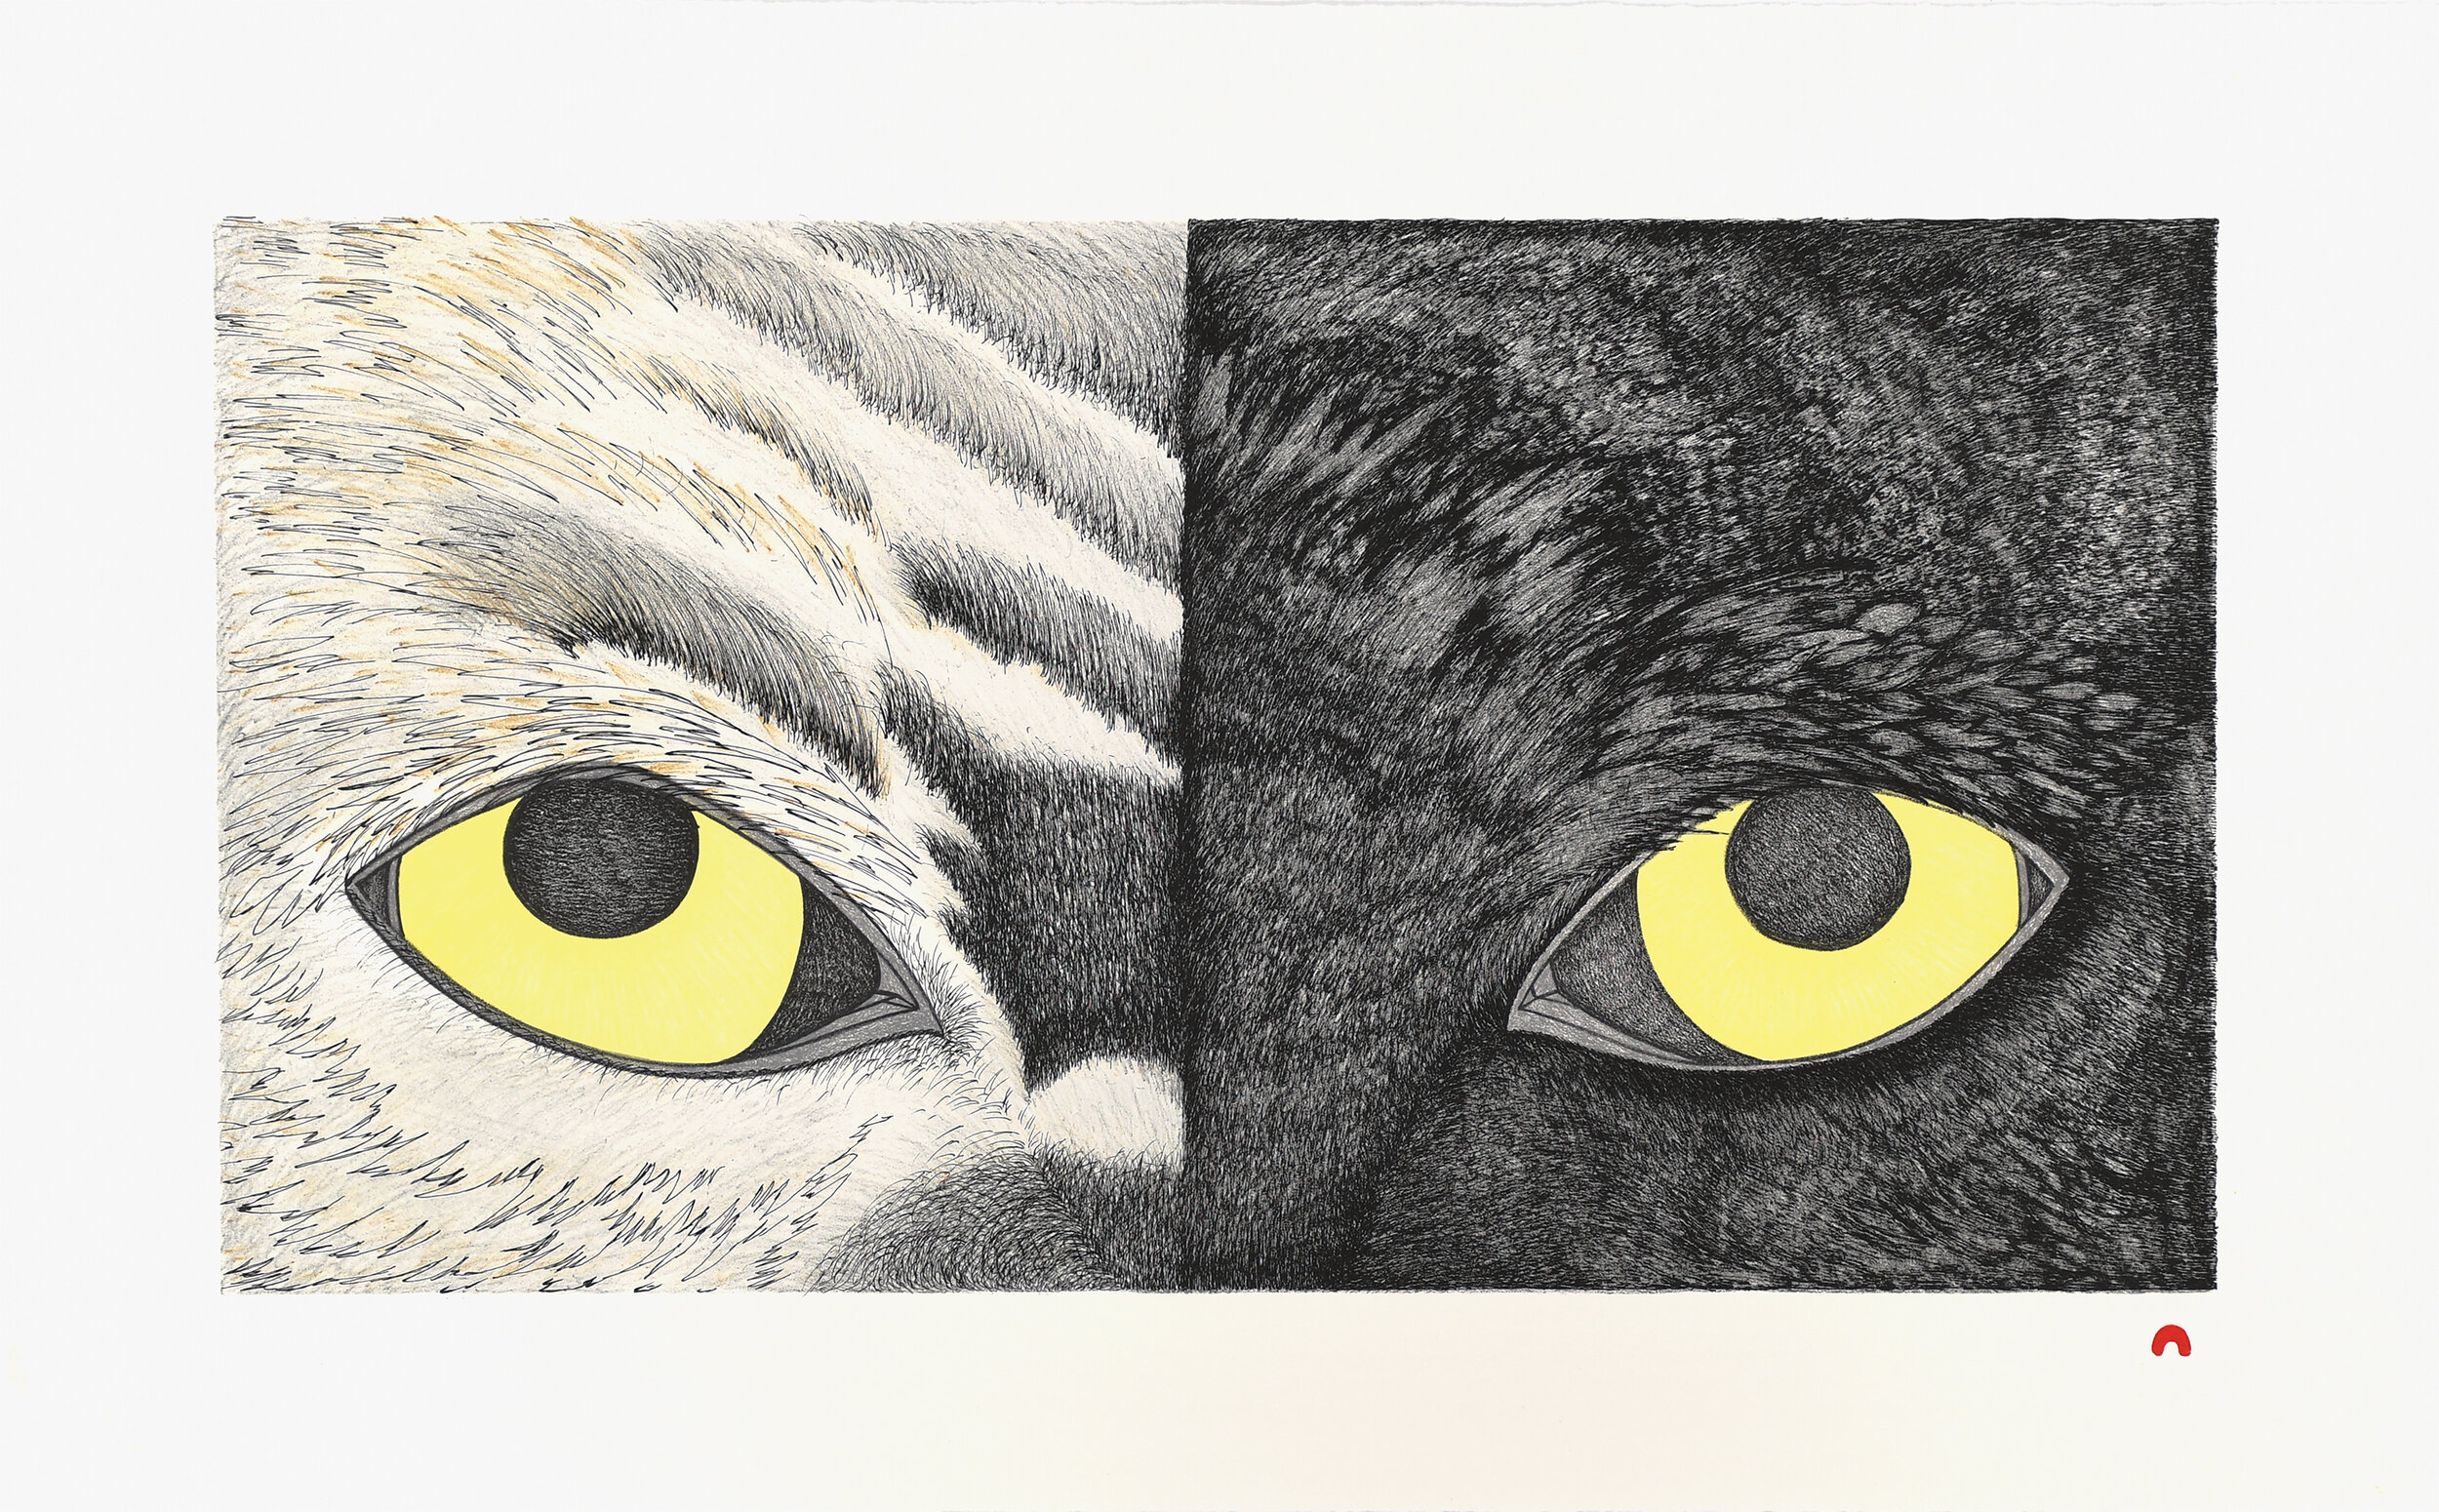 Opposite Attraction Padloo Samayuali Inuit Lithograph Cape Dorset Print Collection 2020